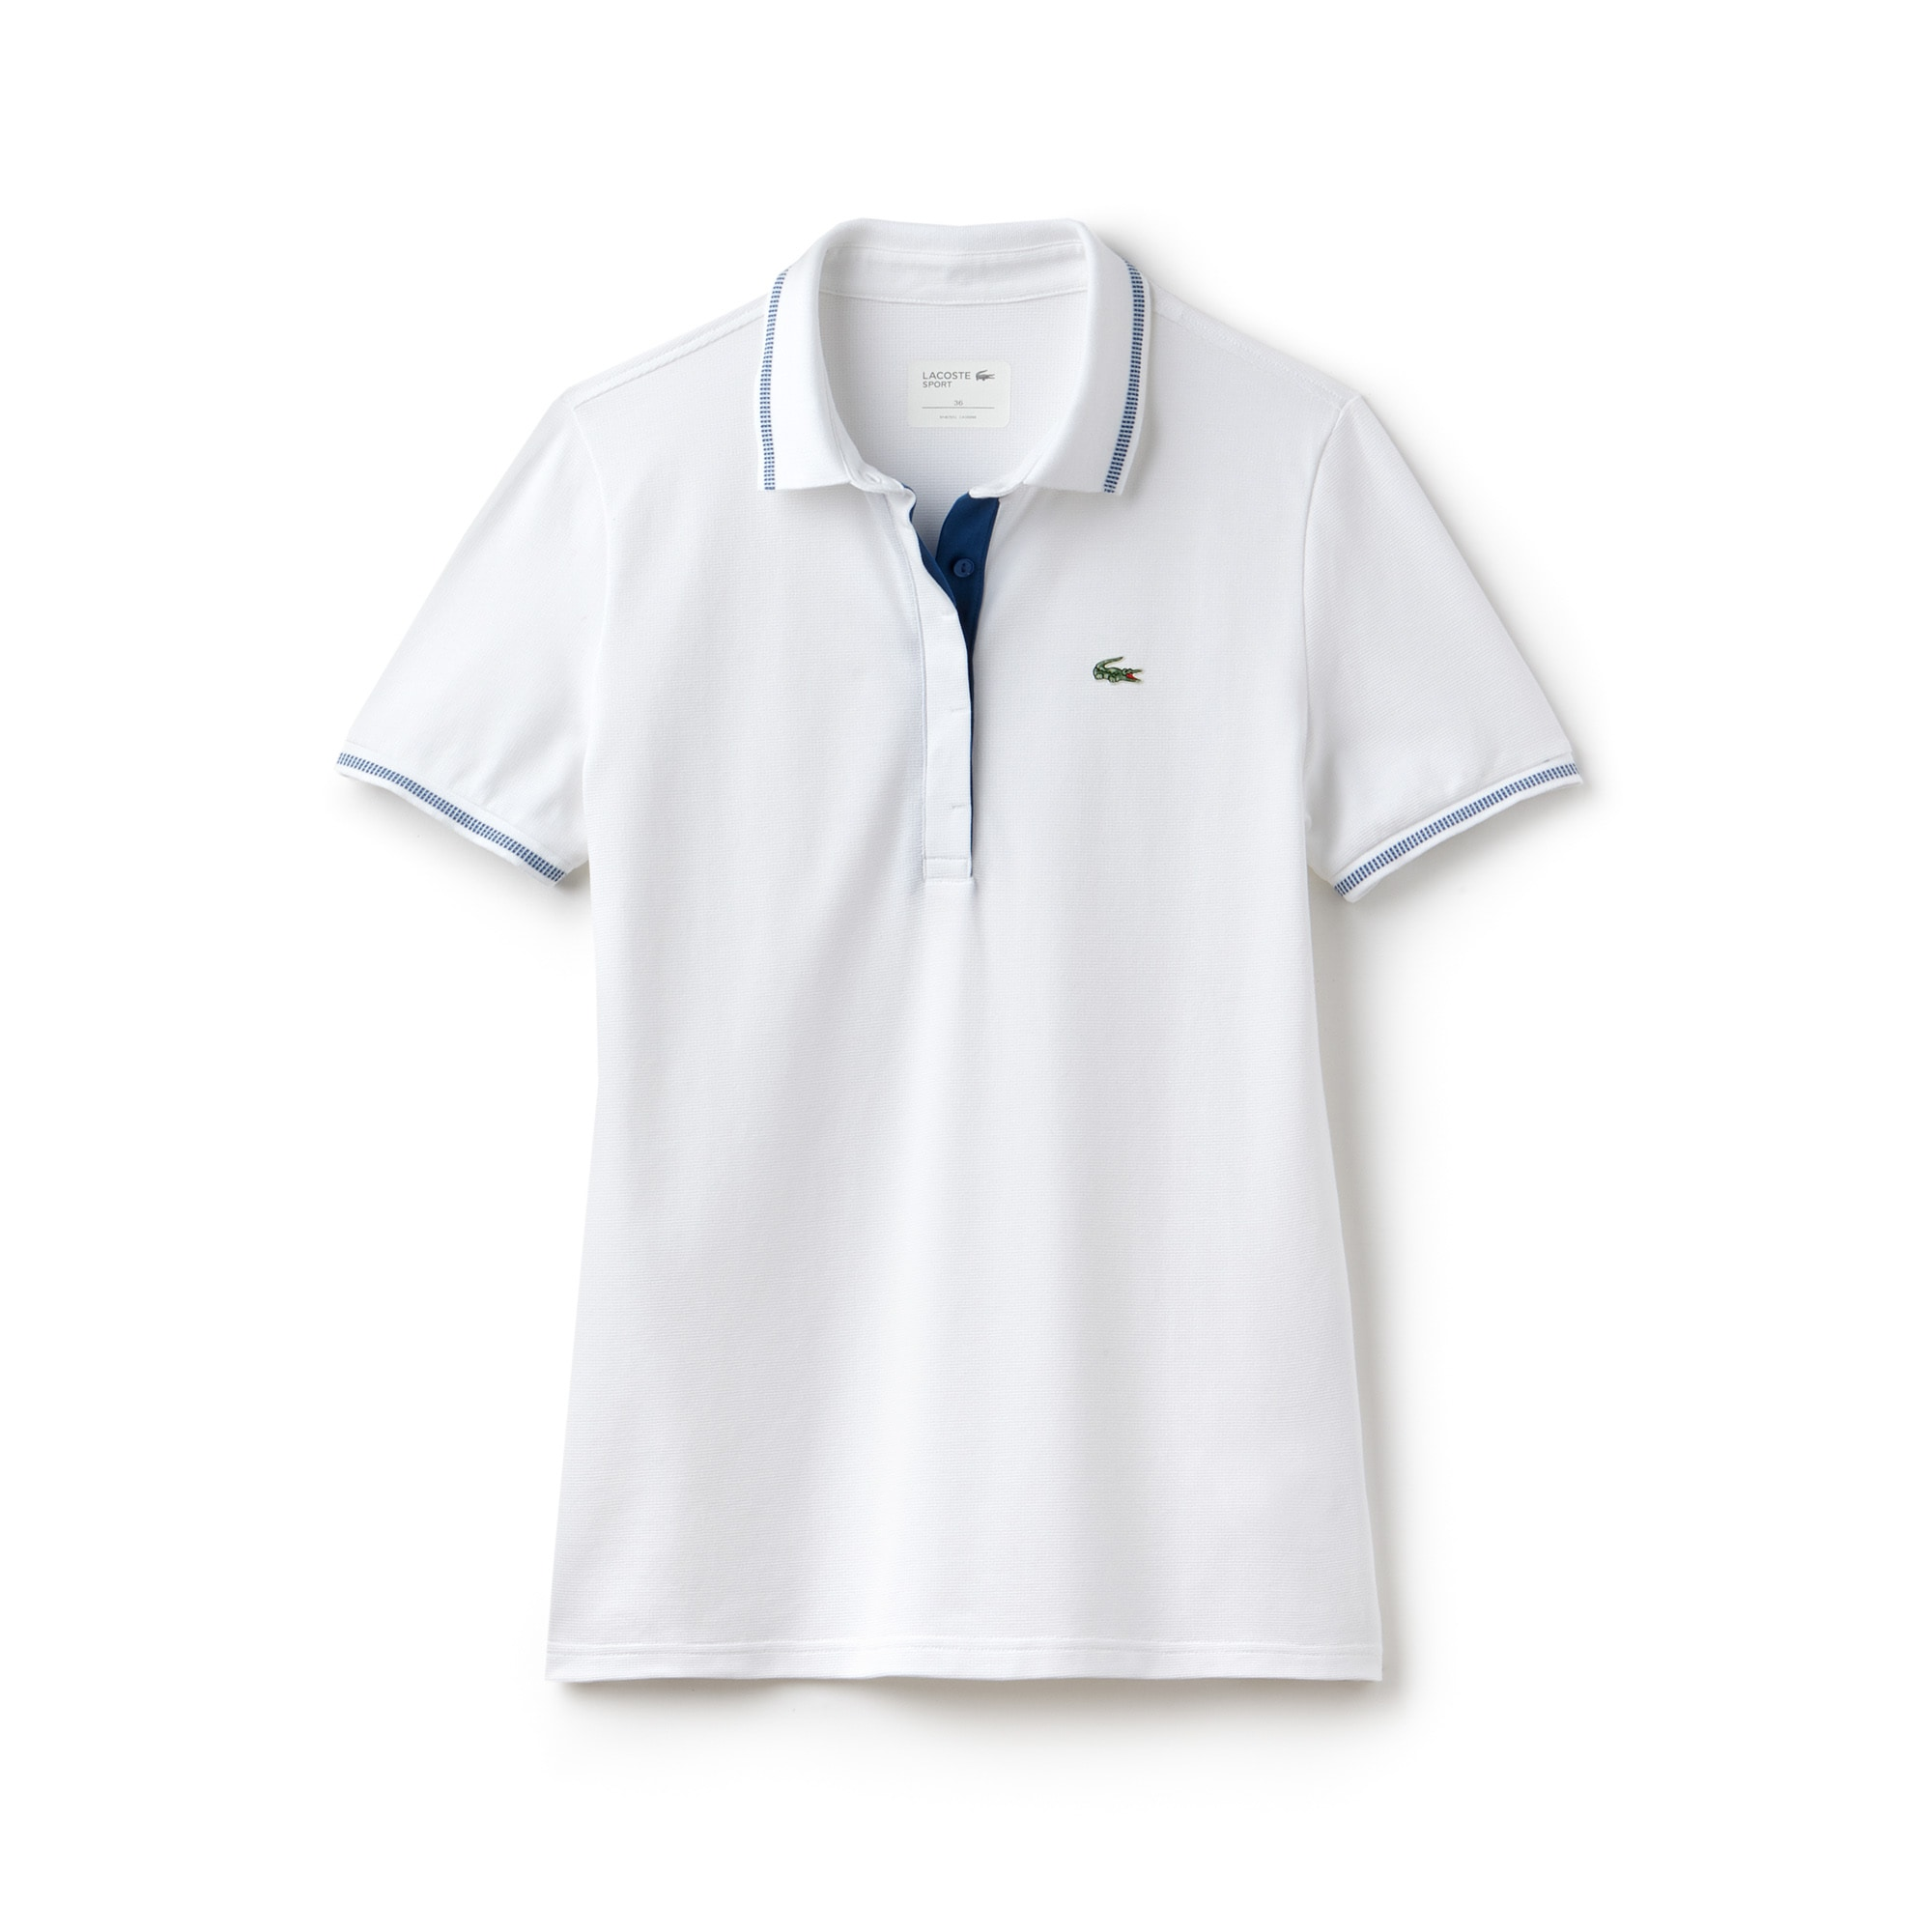 Women's Lacoste SPORT Light Stretch Technical Cotton Golf Polo Shirt